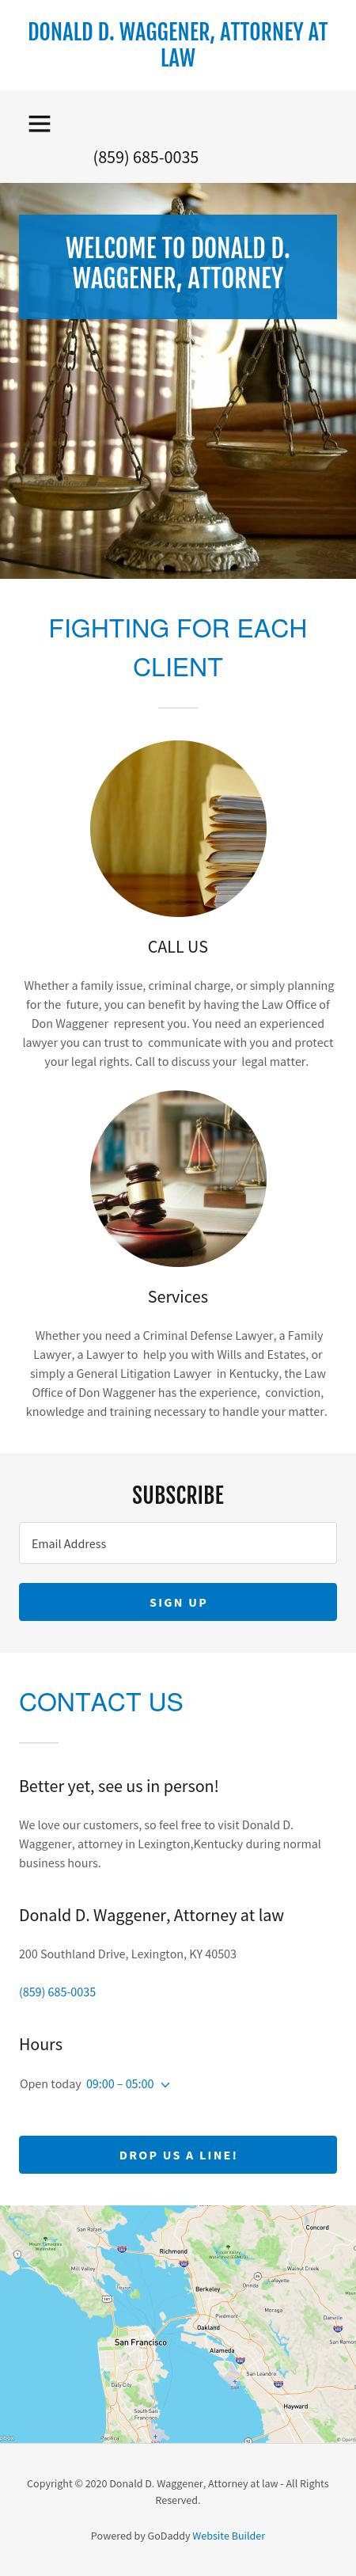 Waggener Donald D - Lexington KY Lawyers